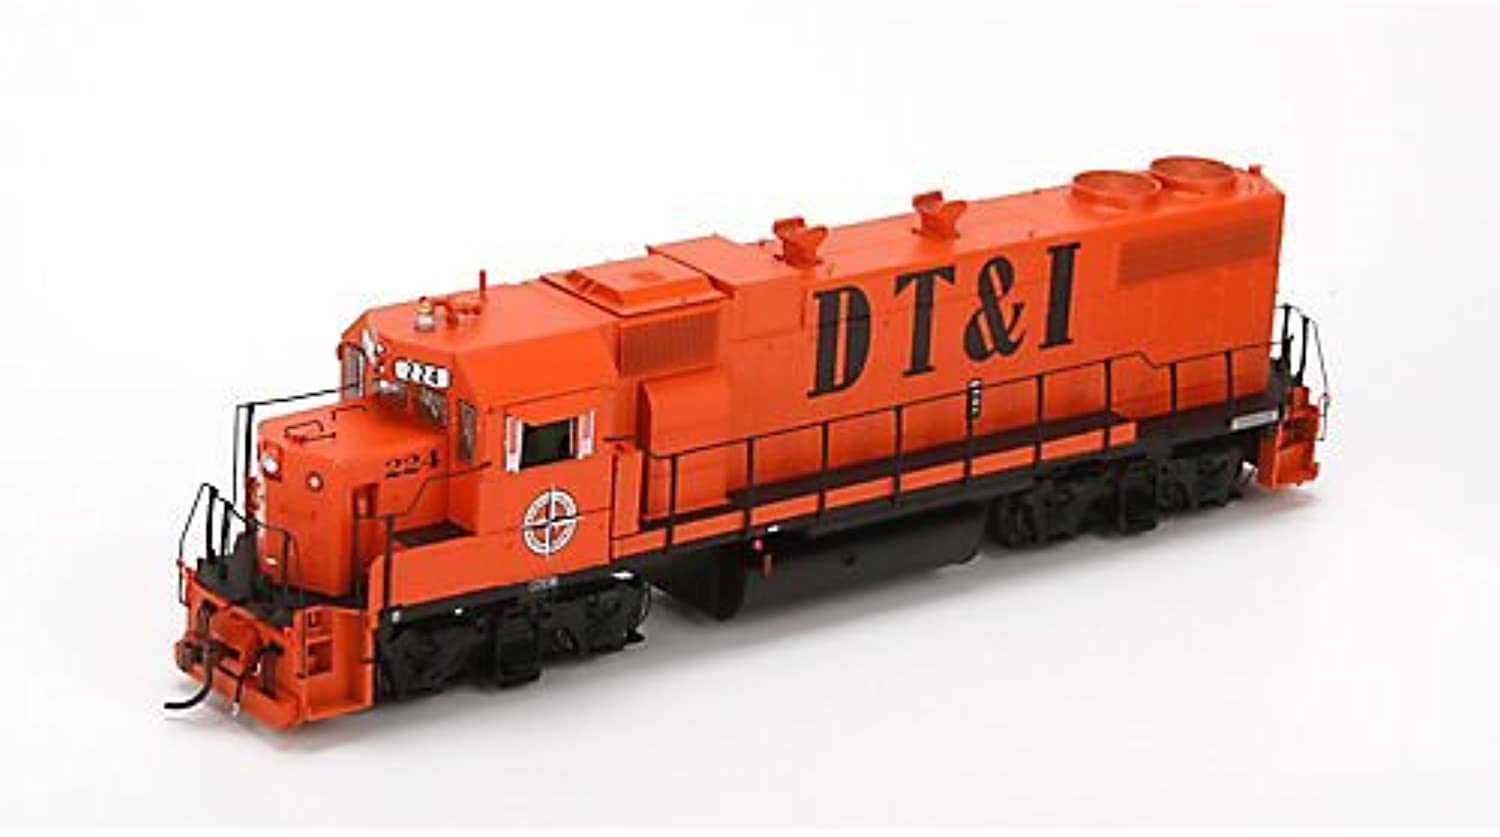 barato HO GP38-2 Phase Phase Phase 1a w DCC & Sound, DT&I  224 by Athearn  buena reputación